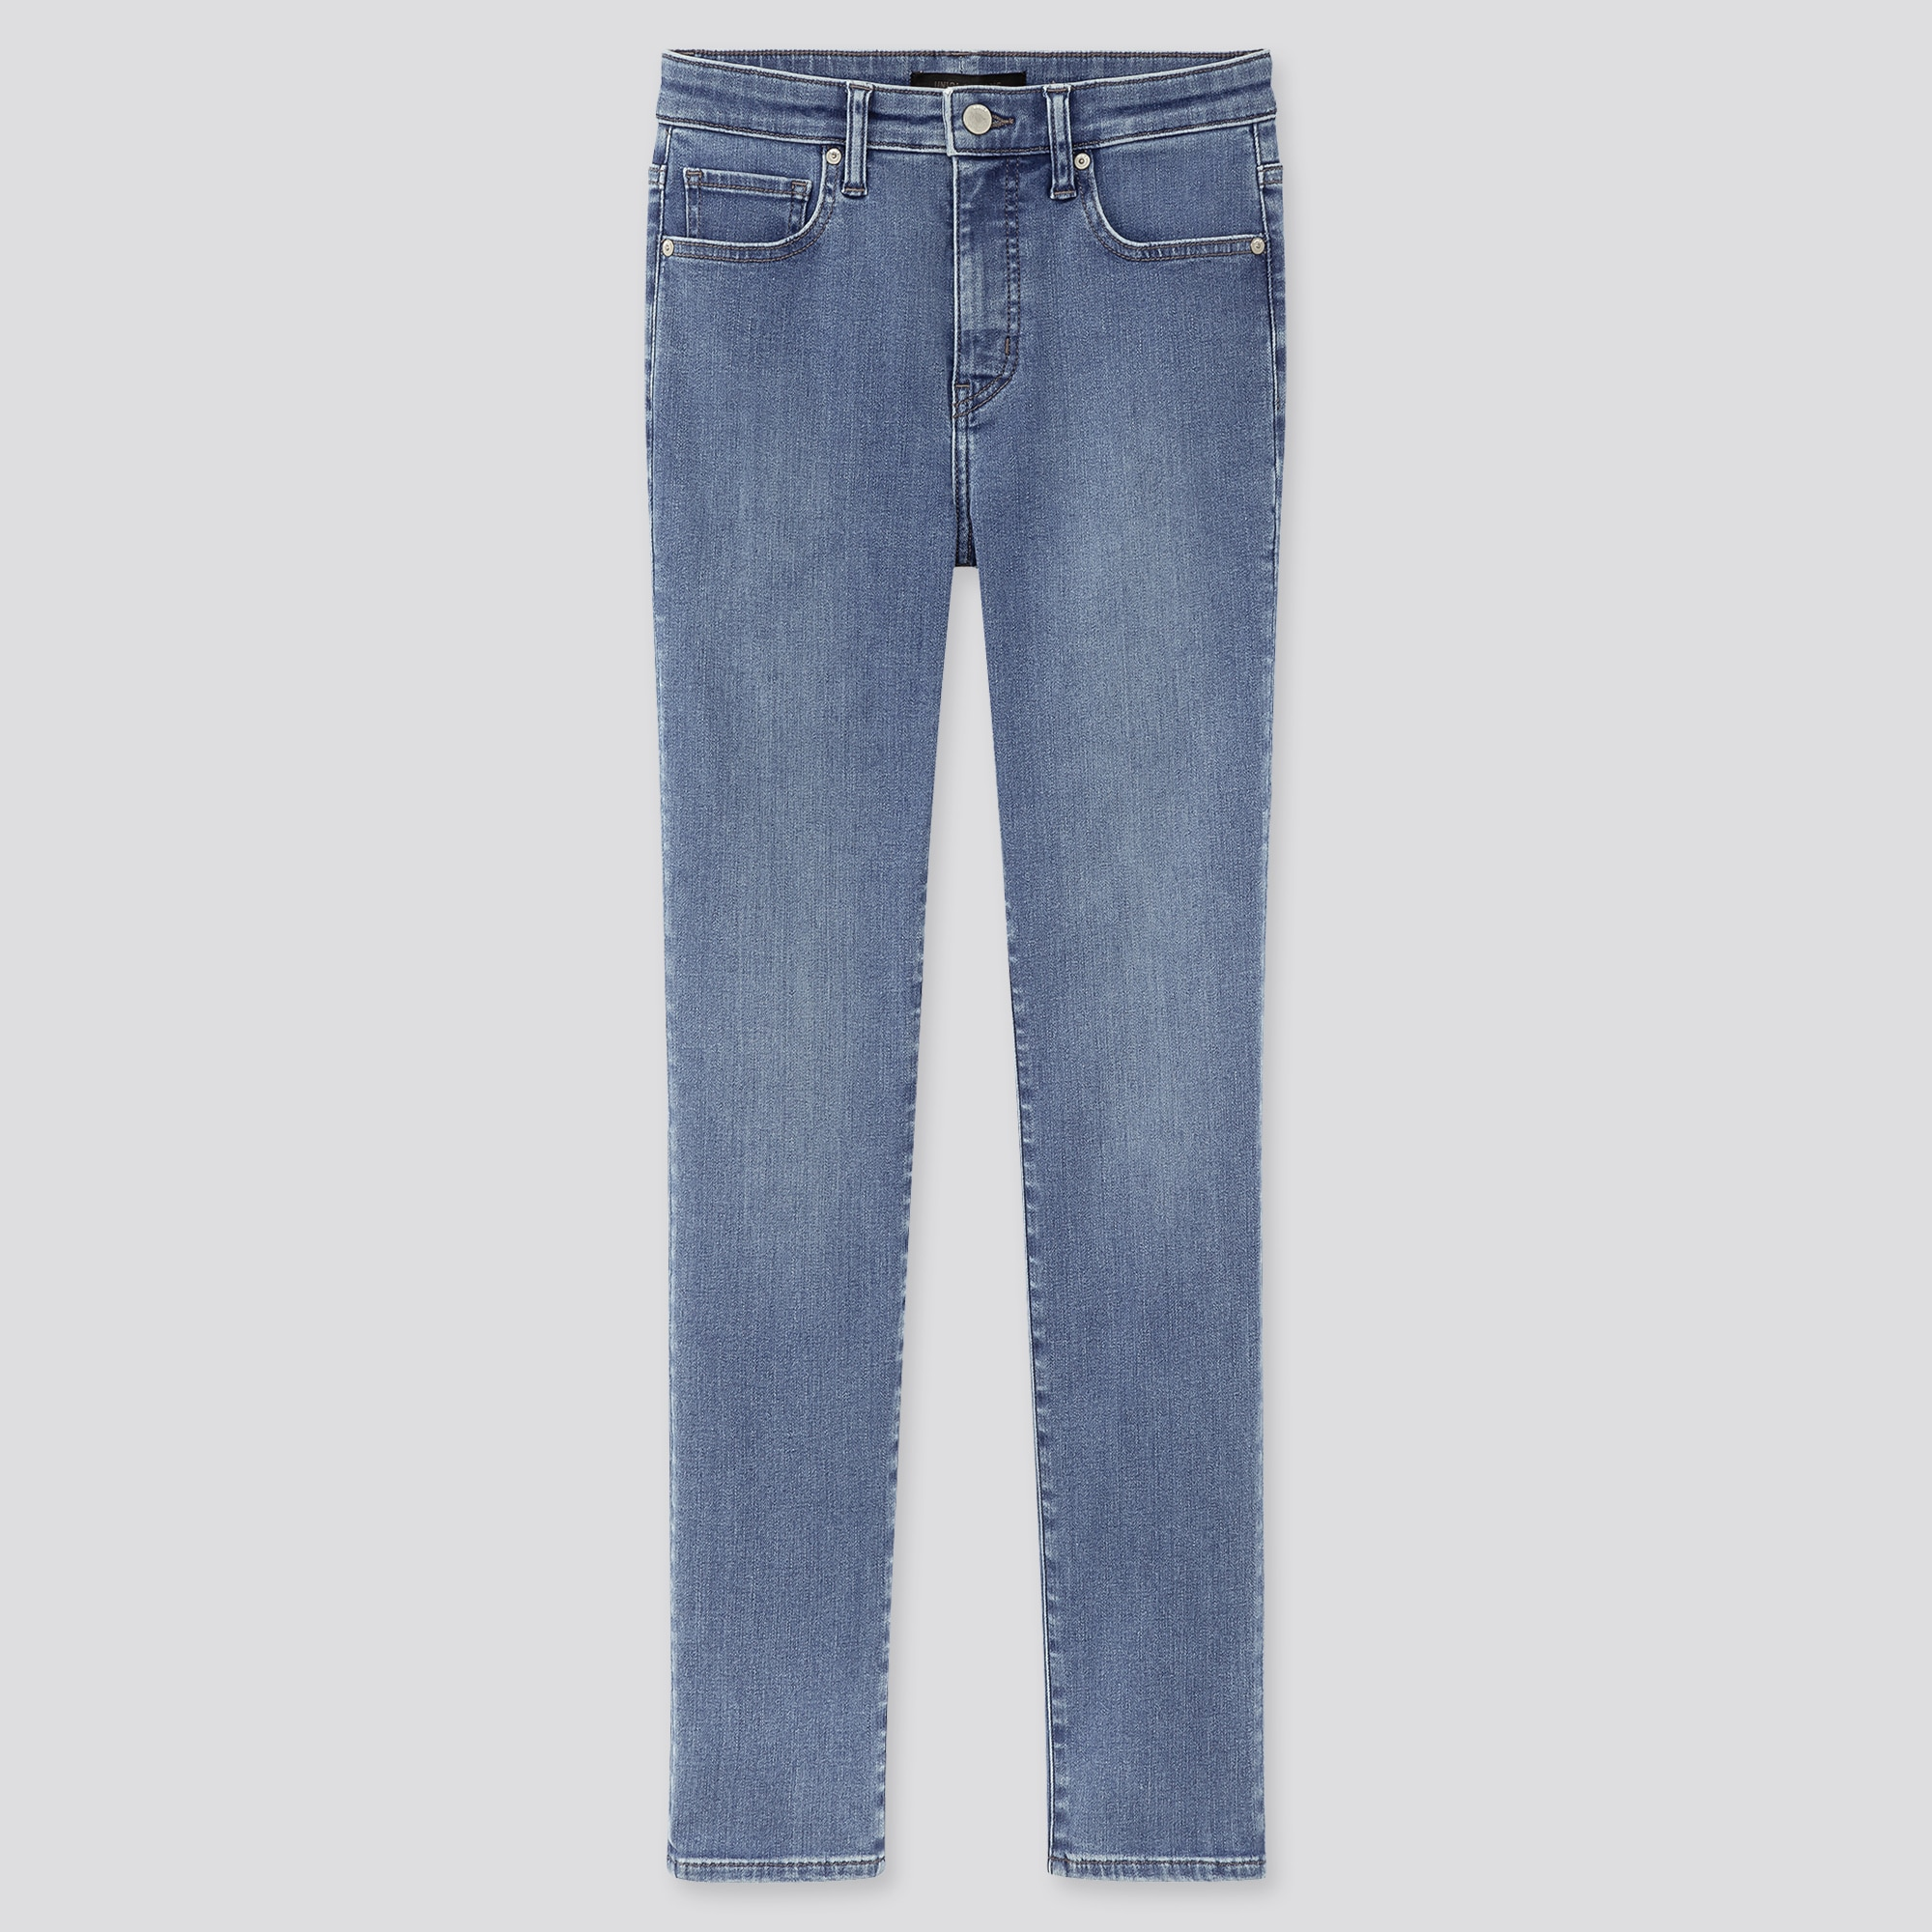 WOMEN HIGH RISE SKINNY ANKLE JEANS (SCULPTING)